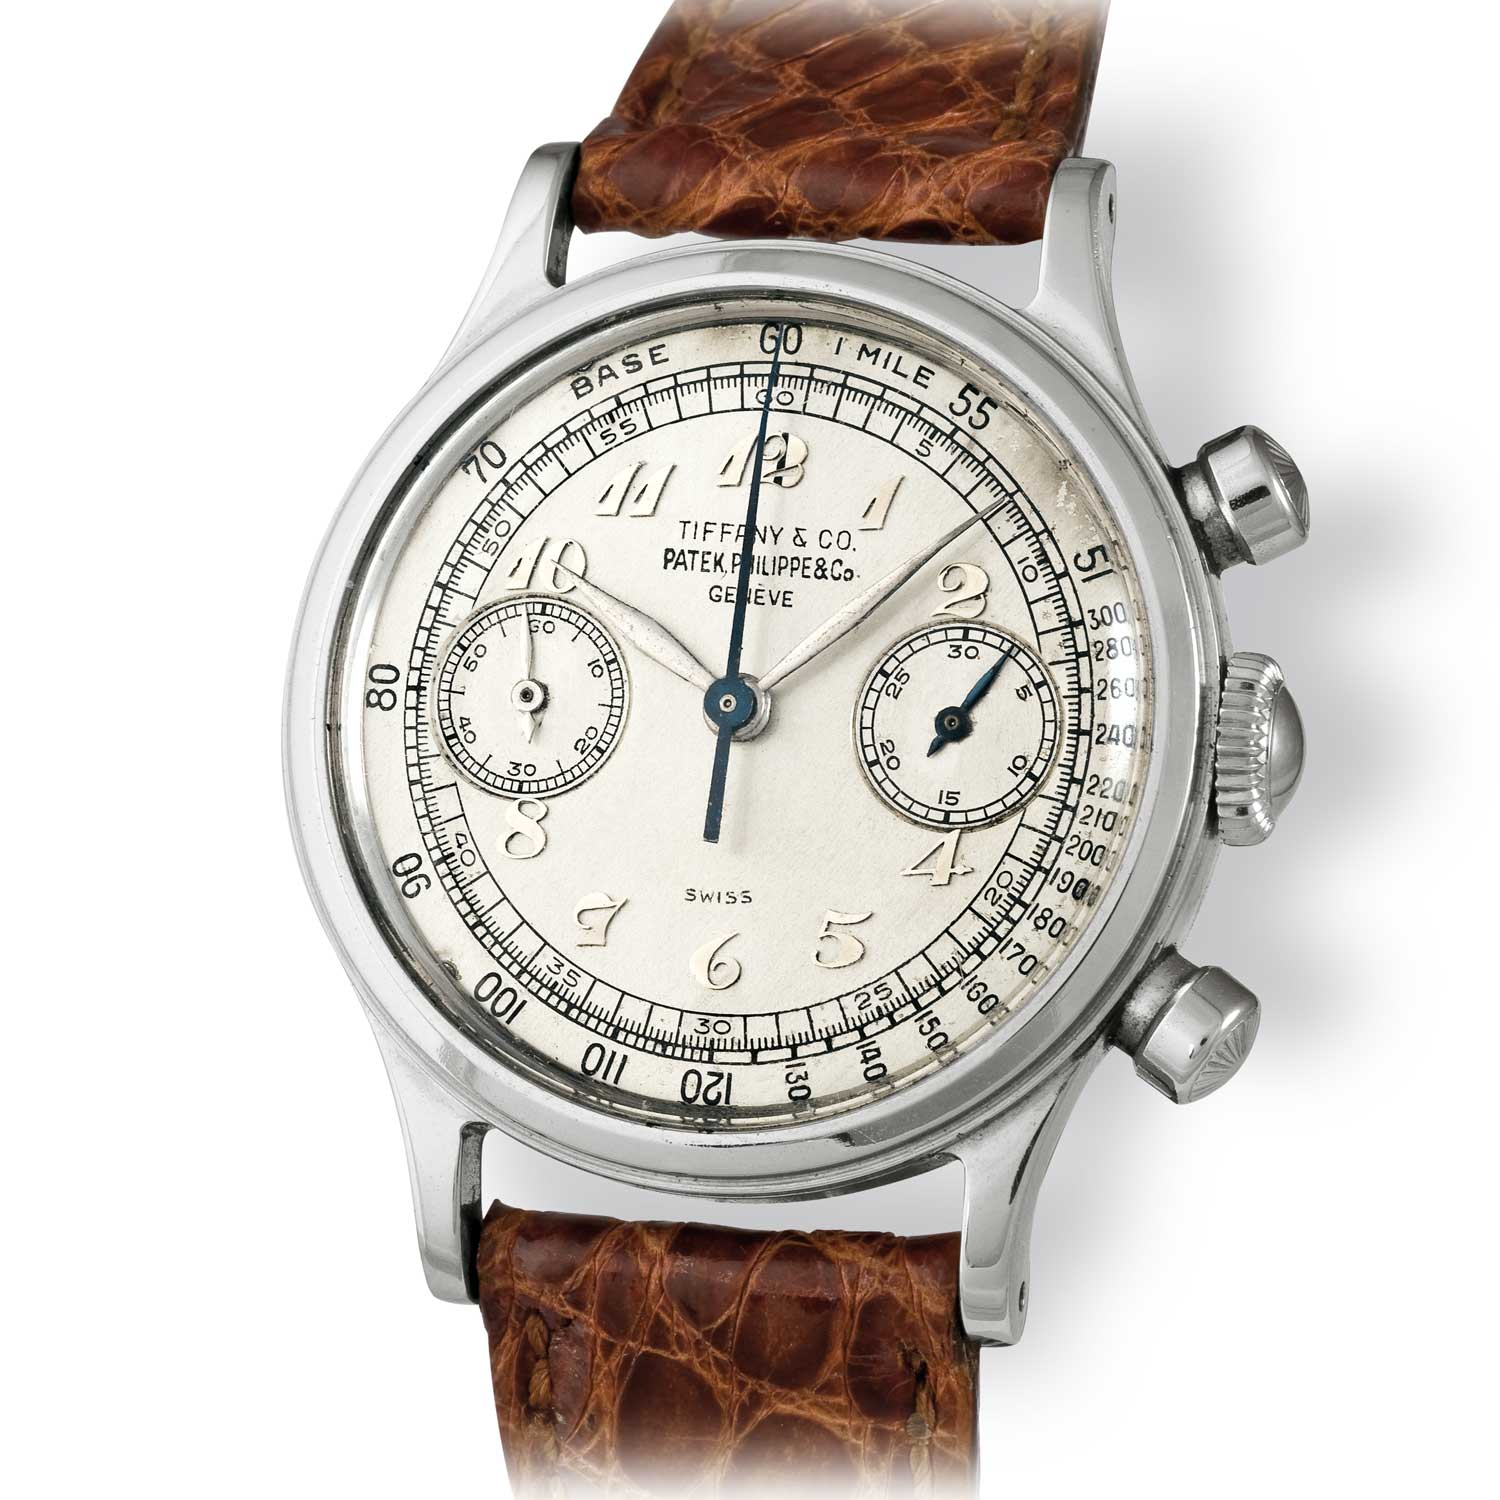 Patek Philippe ref. 1463 steel chronograph with Breguet numerals and Tiffany stamped dial (Image: John Goldberger)